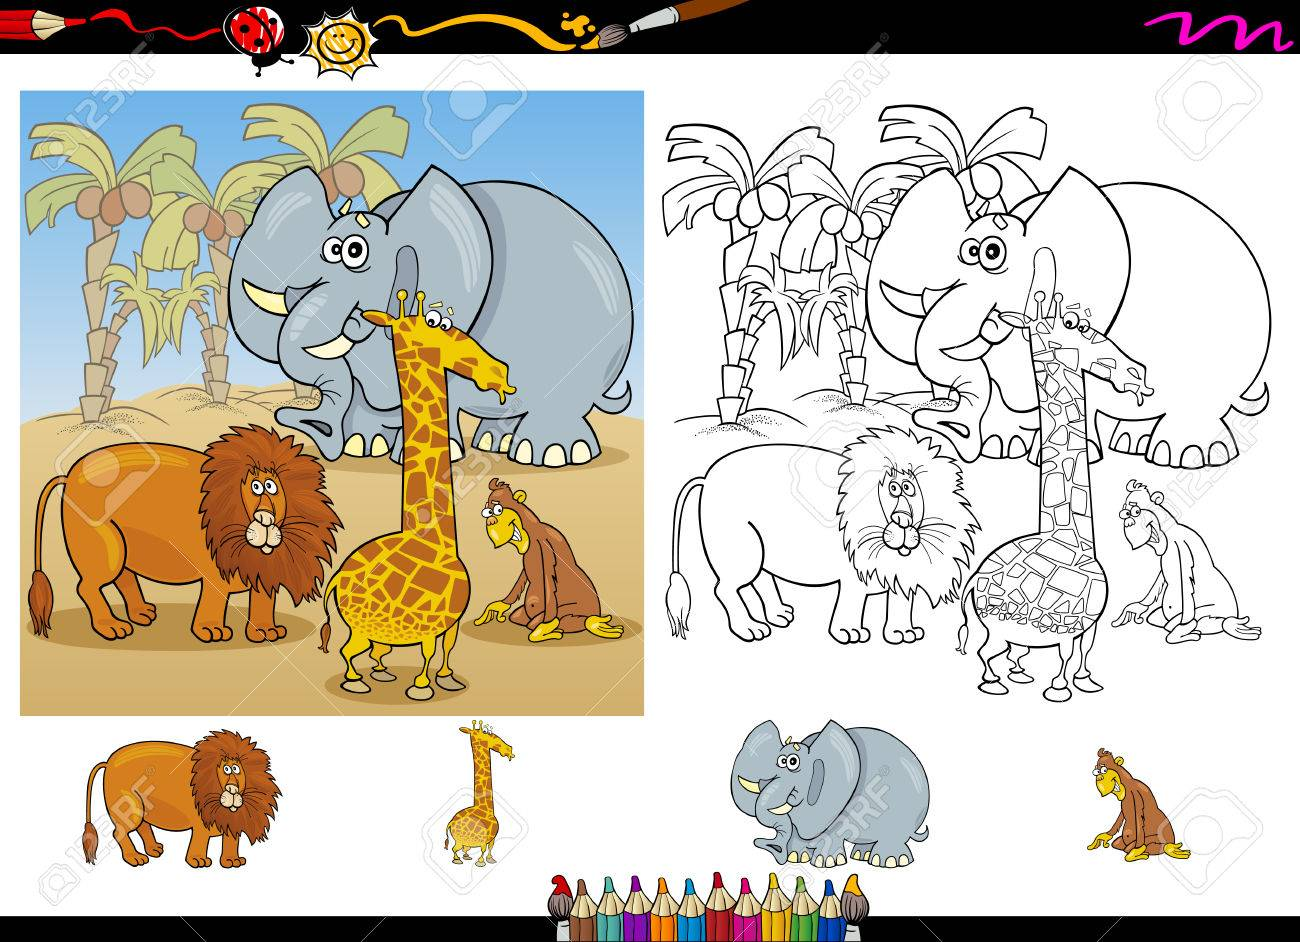 Cartoon Illustration Of Funny Safari Wild Animals Group For Coloring Book With Elements Set Stock Vector